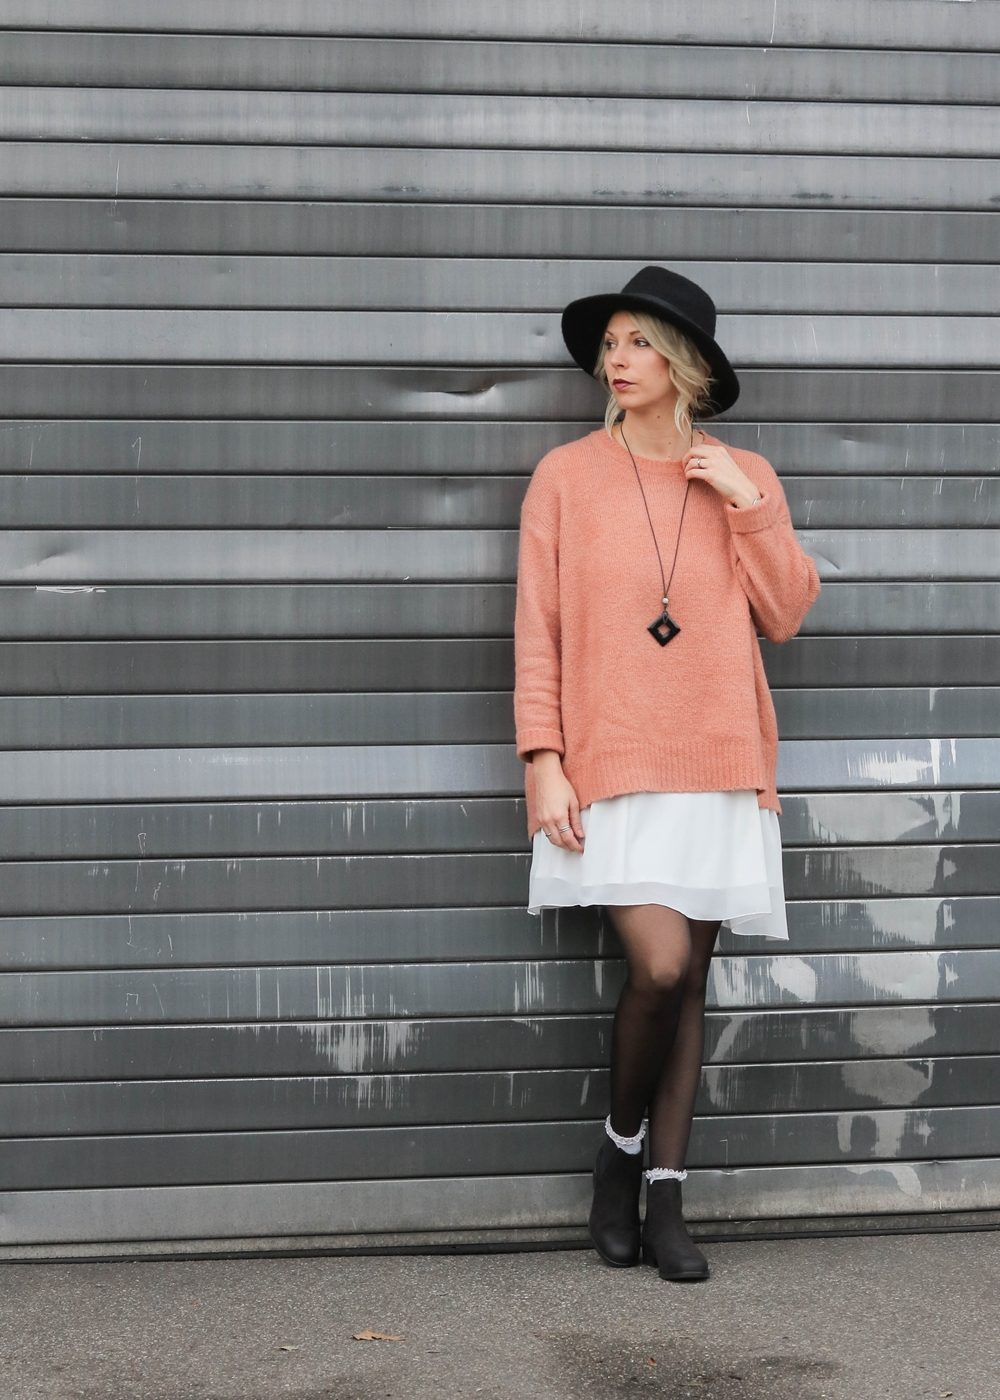 fashionblogger-outfit-ankle-boots-shoemates-rosa-strickpullover-zara-lagenlook-20